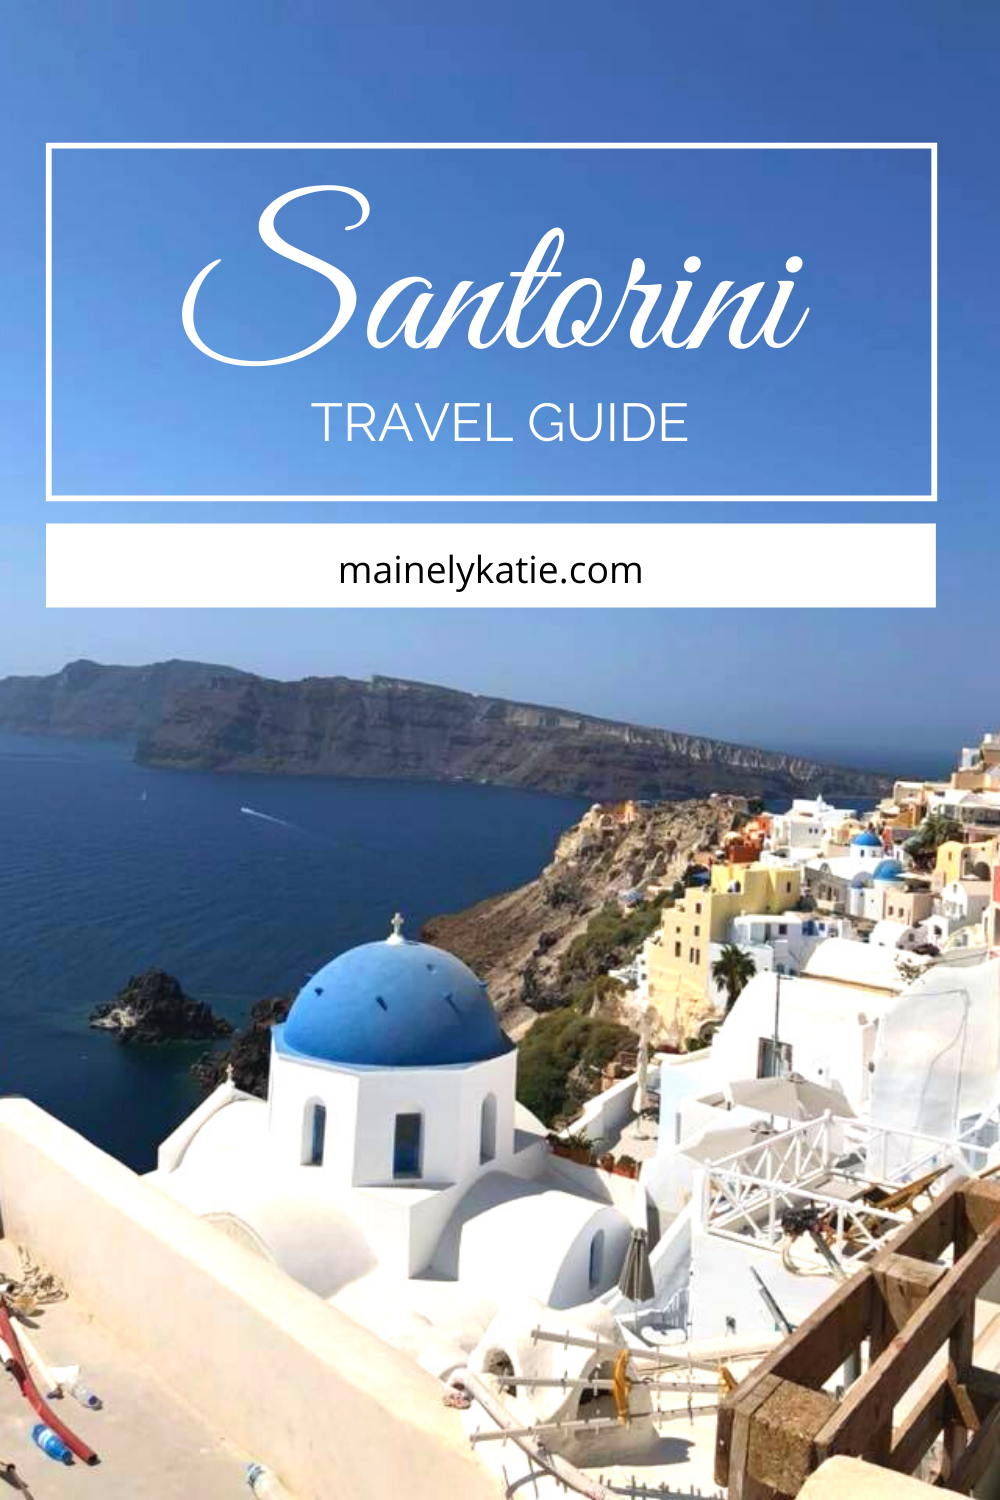 We had the BEST time on out first trip to Santorini and we cannot wait to return. I put together this Santorini travel guide for first time travelers. I provide all the details to where we stayed, where we ate and the places we visited.